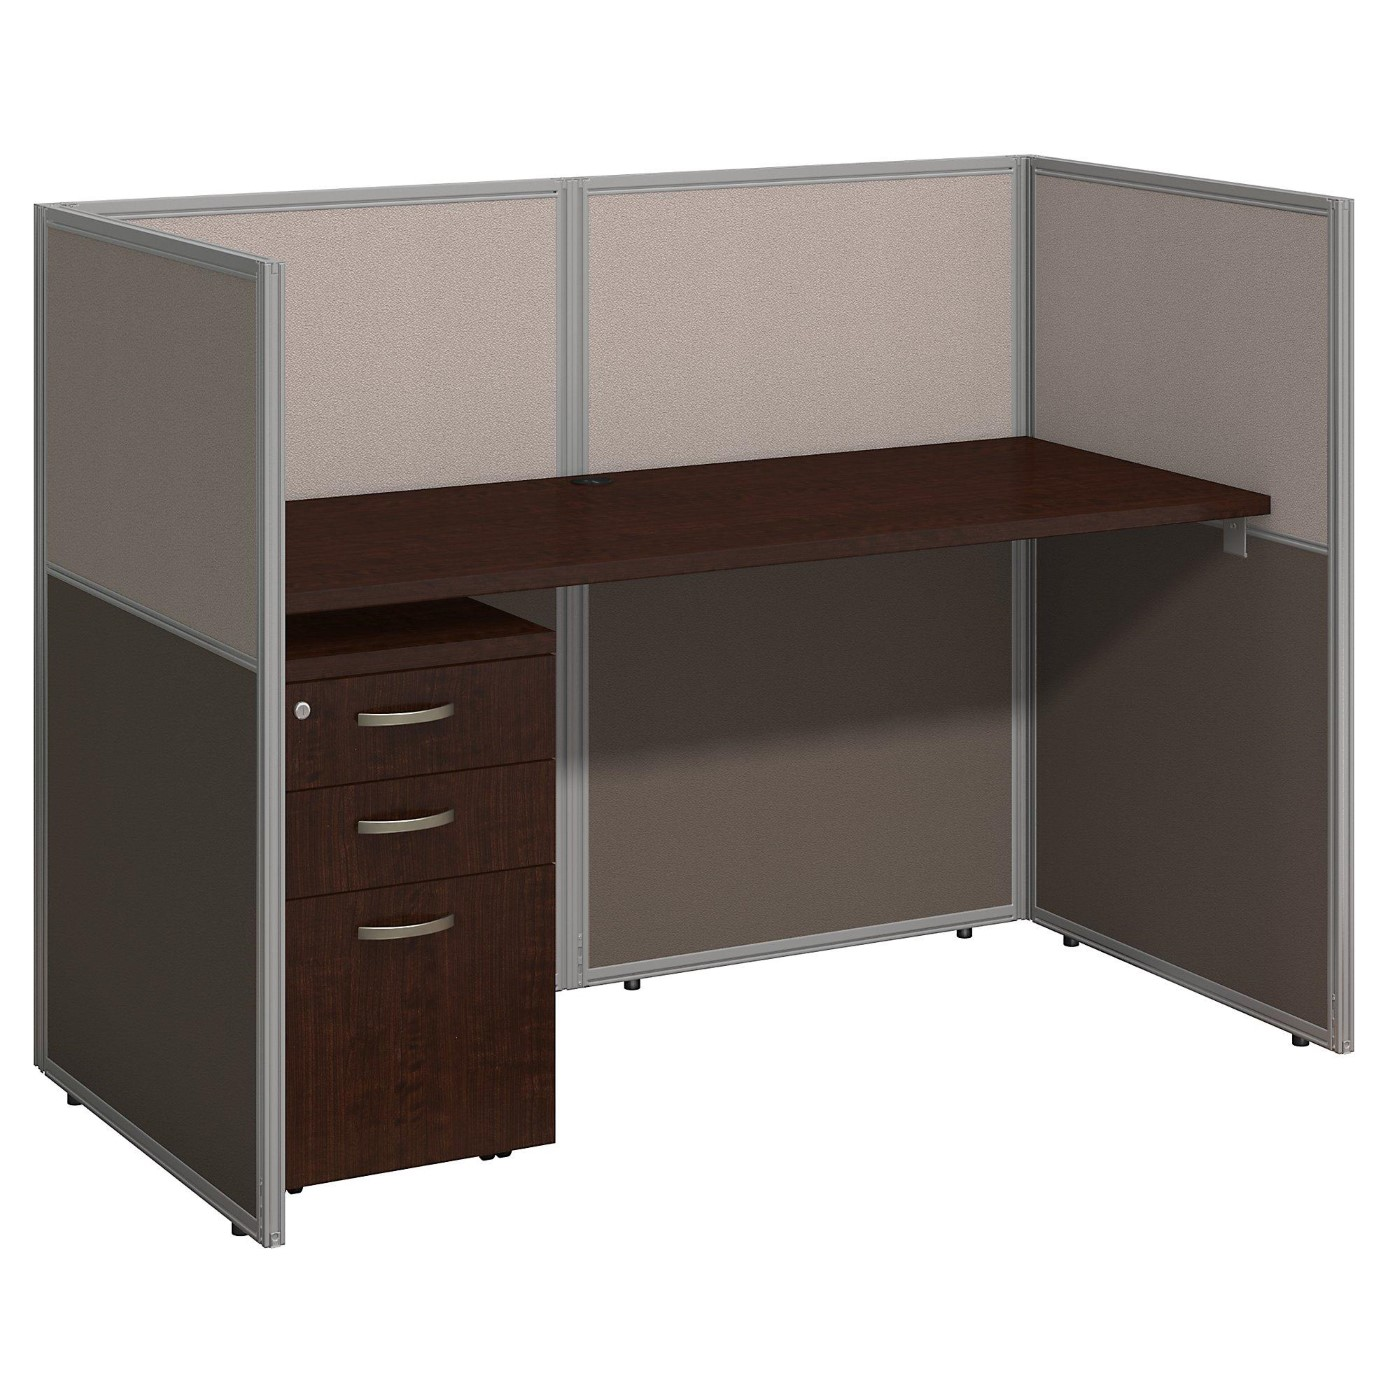 <font color=#c60><b>BUSH BUSINESS FURNITURE EASY OFFICE 60W STRAIGHT DESK CLOSED OFFICE WITH MOBILE FILE CABINET. FREE SHIPPING</font></b></font></b>